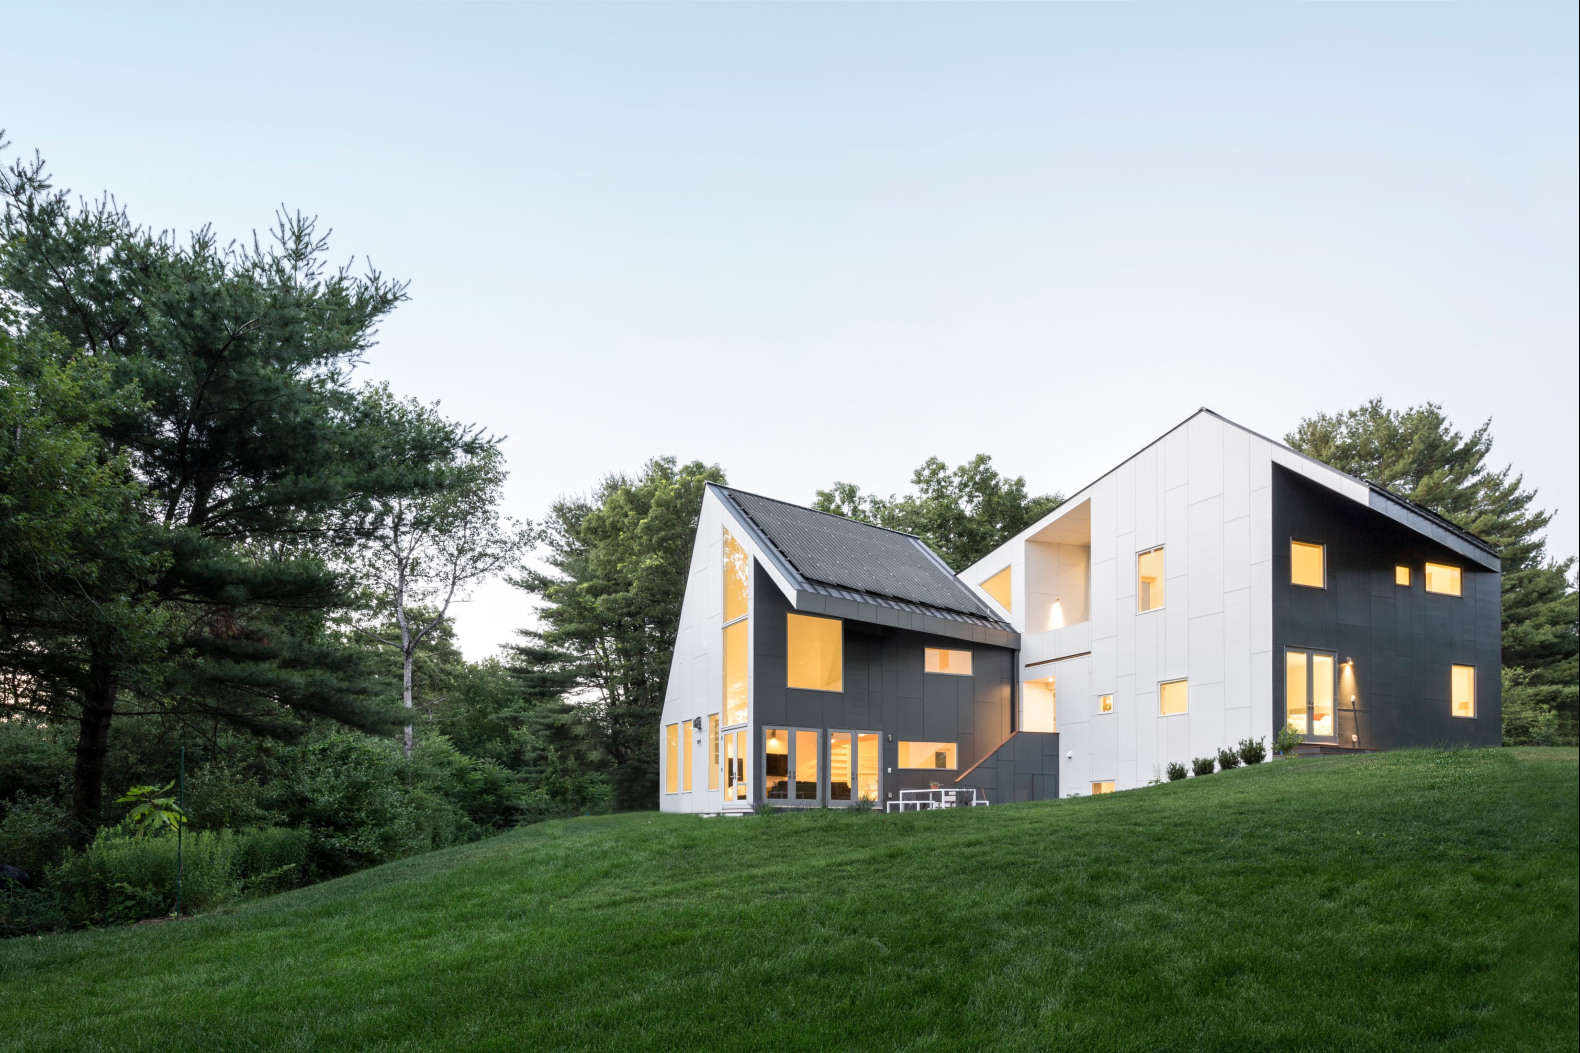 Net-zero home is designed to blend in with its natural, protected landscape